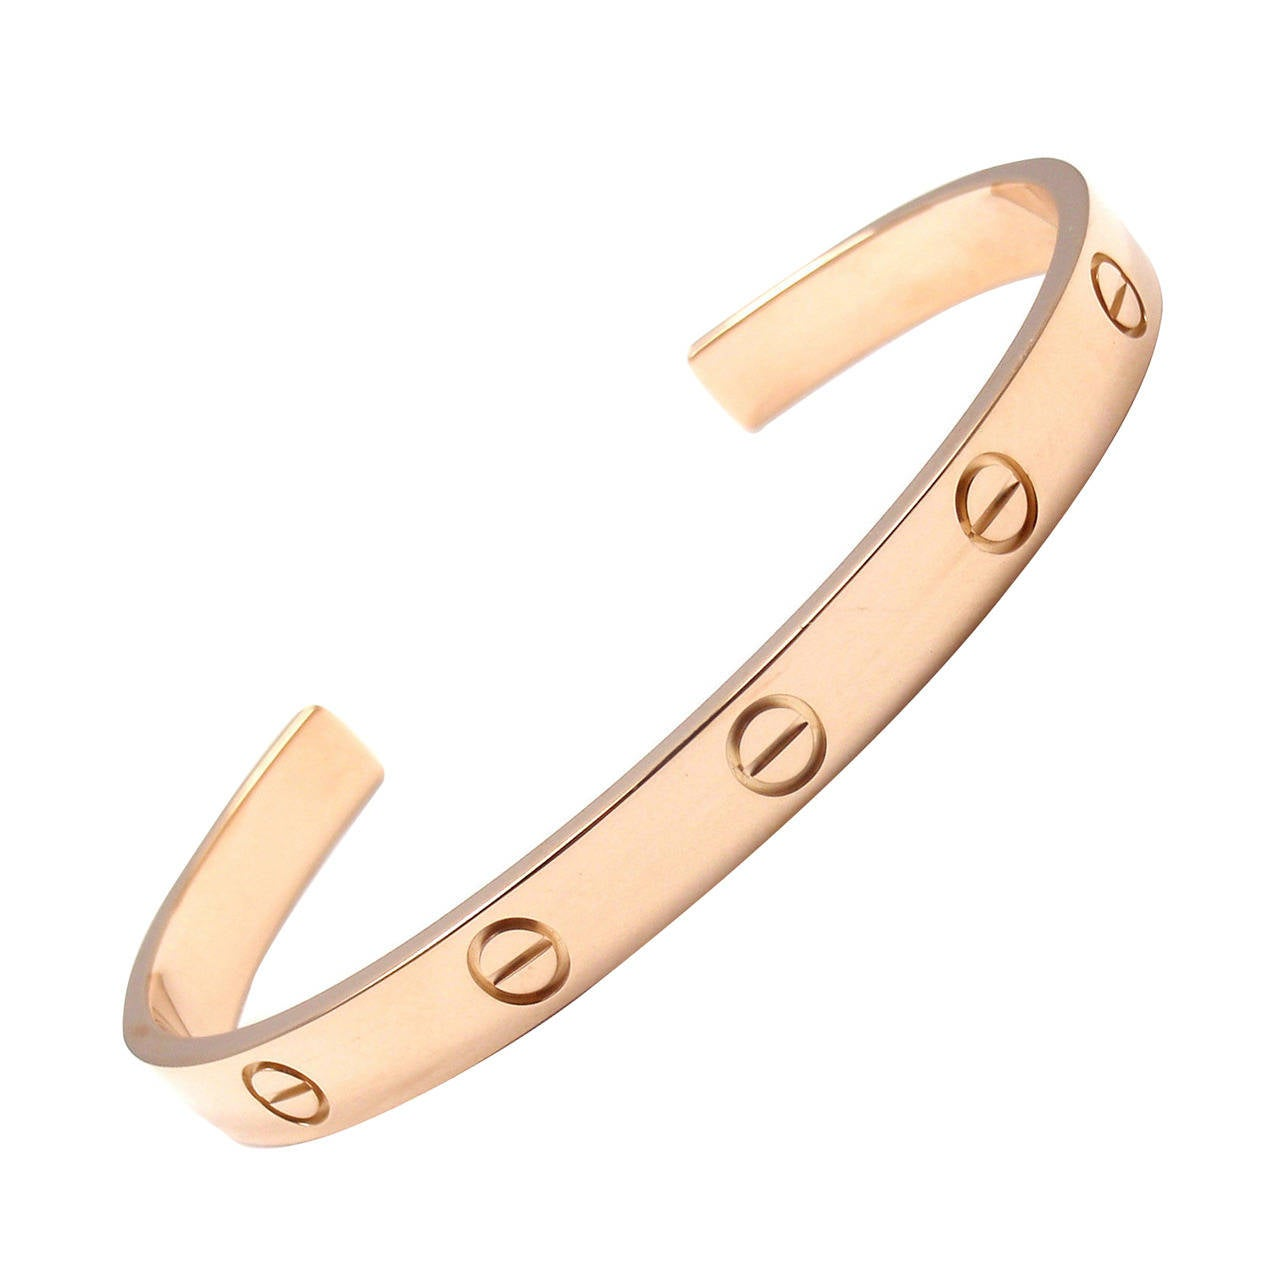 cbaed8d829226 Cartier Love Rose Gold Open Cuff Bangle Bracelet